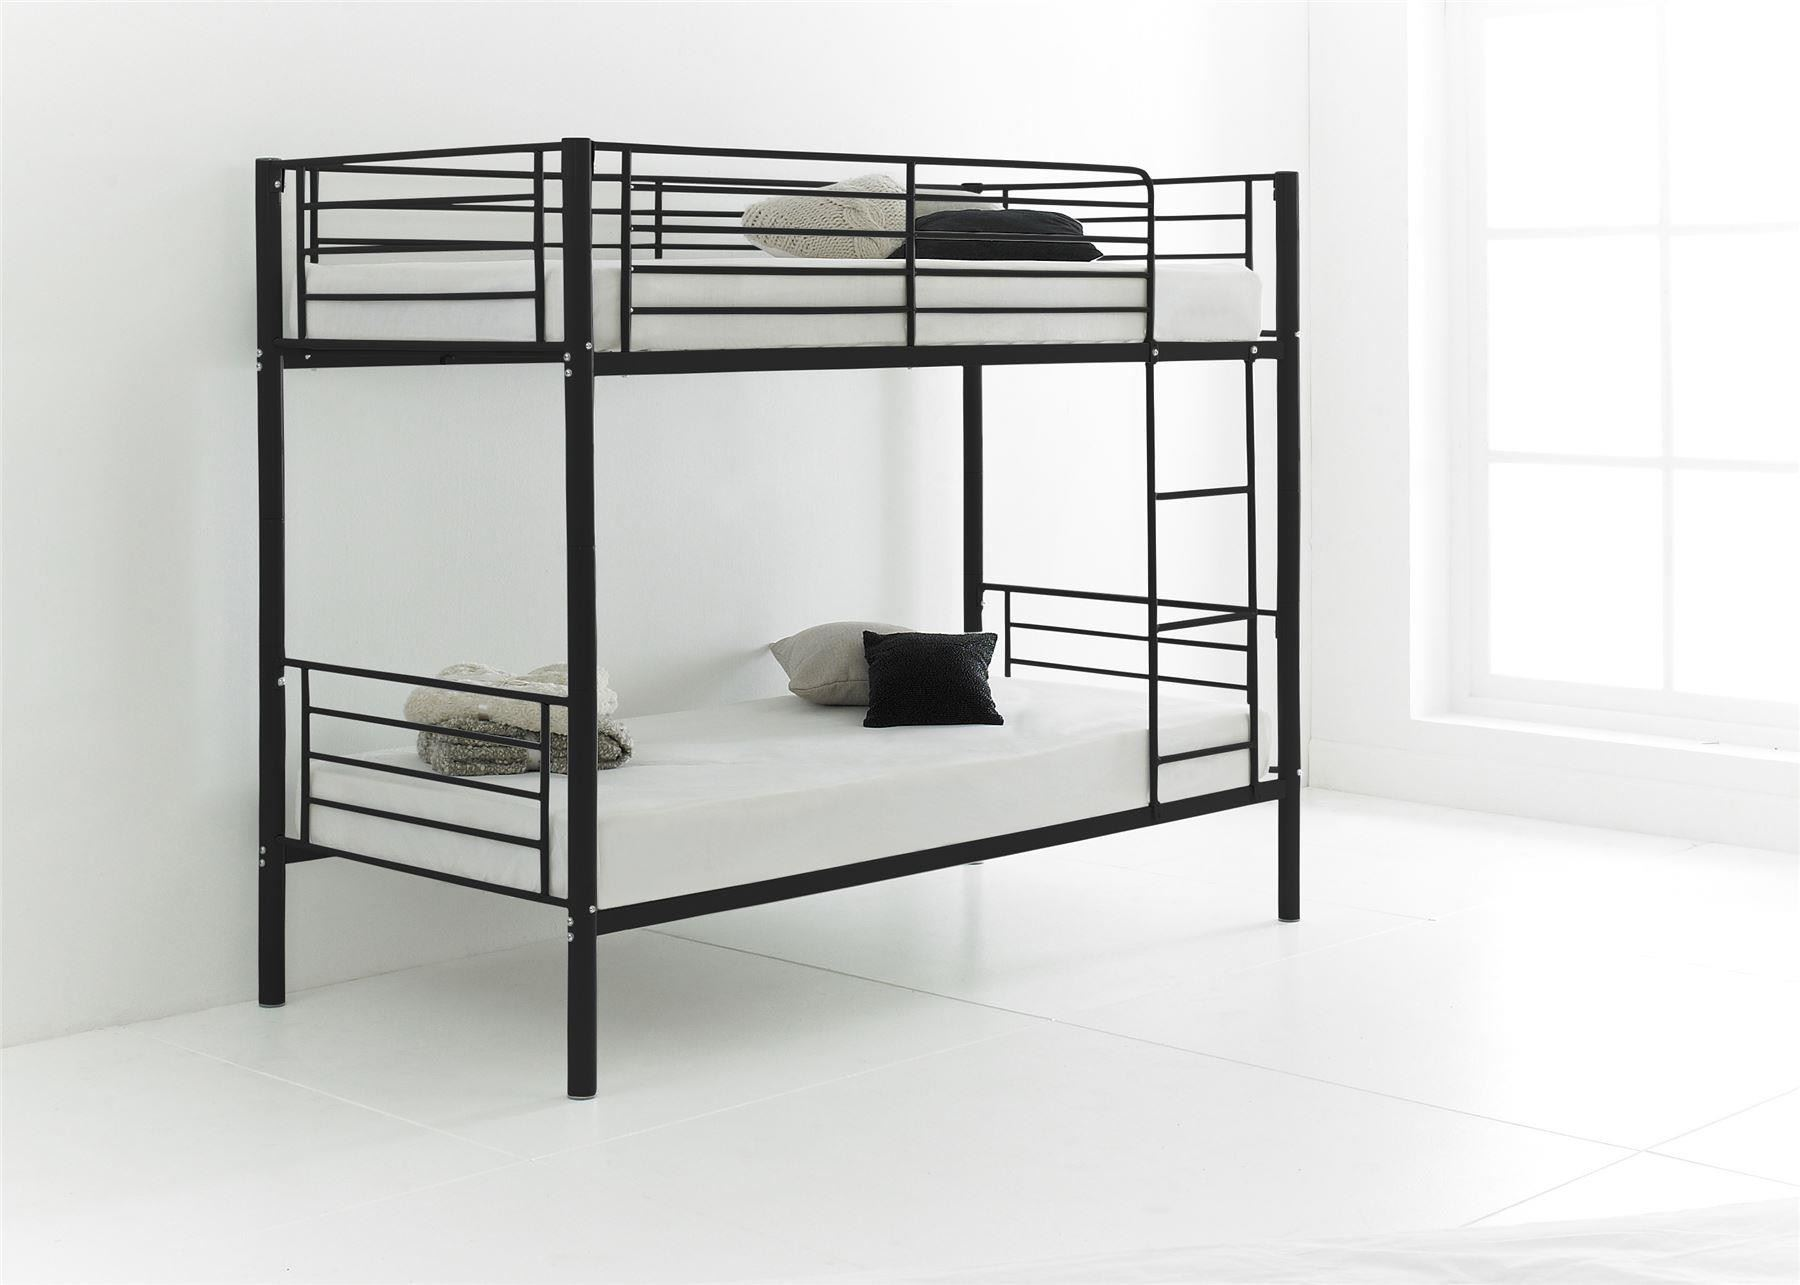 3ft single children bunk bed metal frame for kids twin sleeper mattress optional ebay. Black Bedroom Furniture Sets. Home Design Ideas